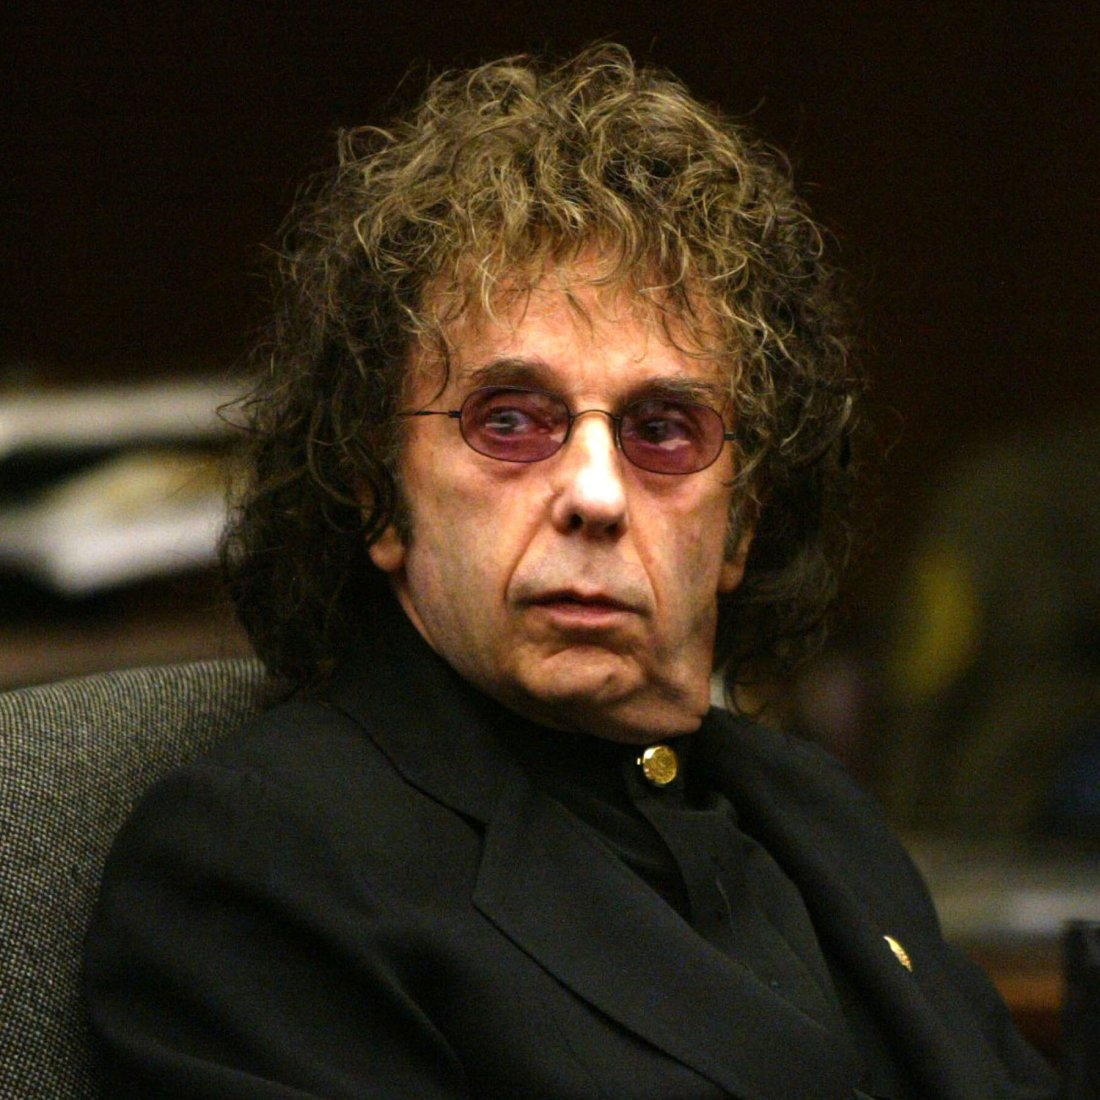 Phil Spector Music Producer Convicted For Murder Dies At 81